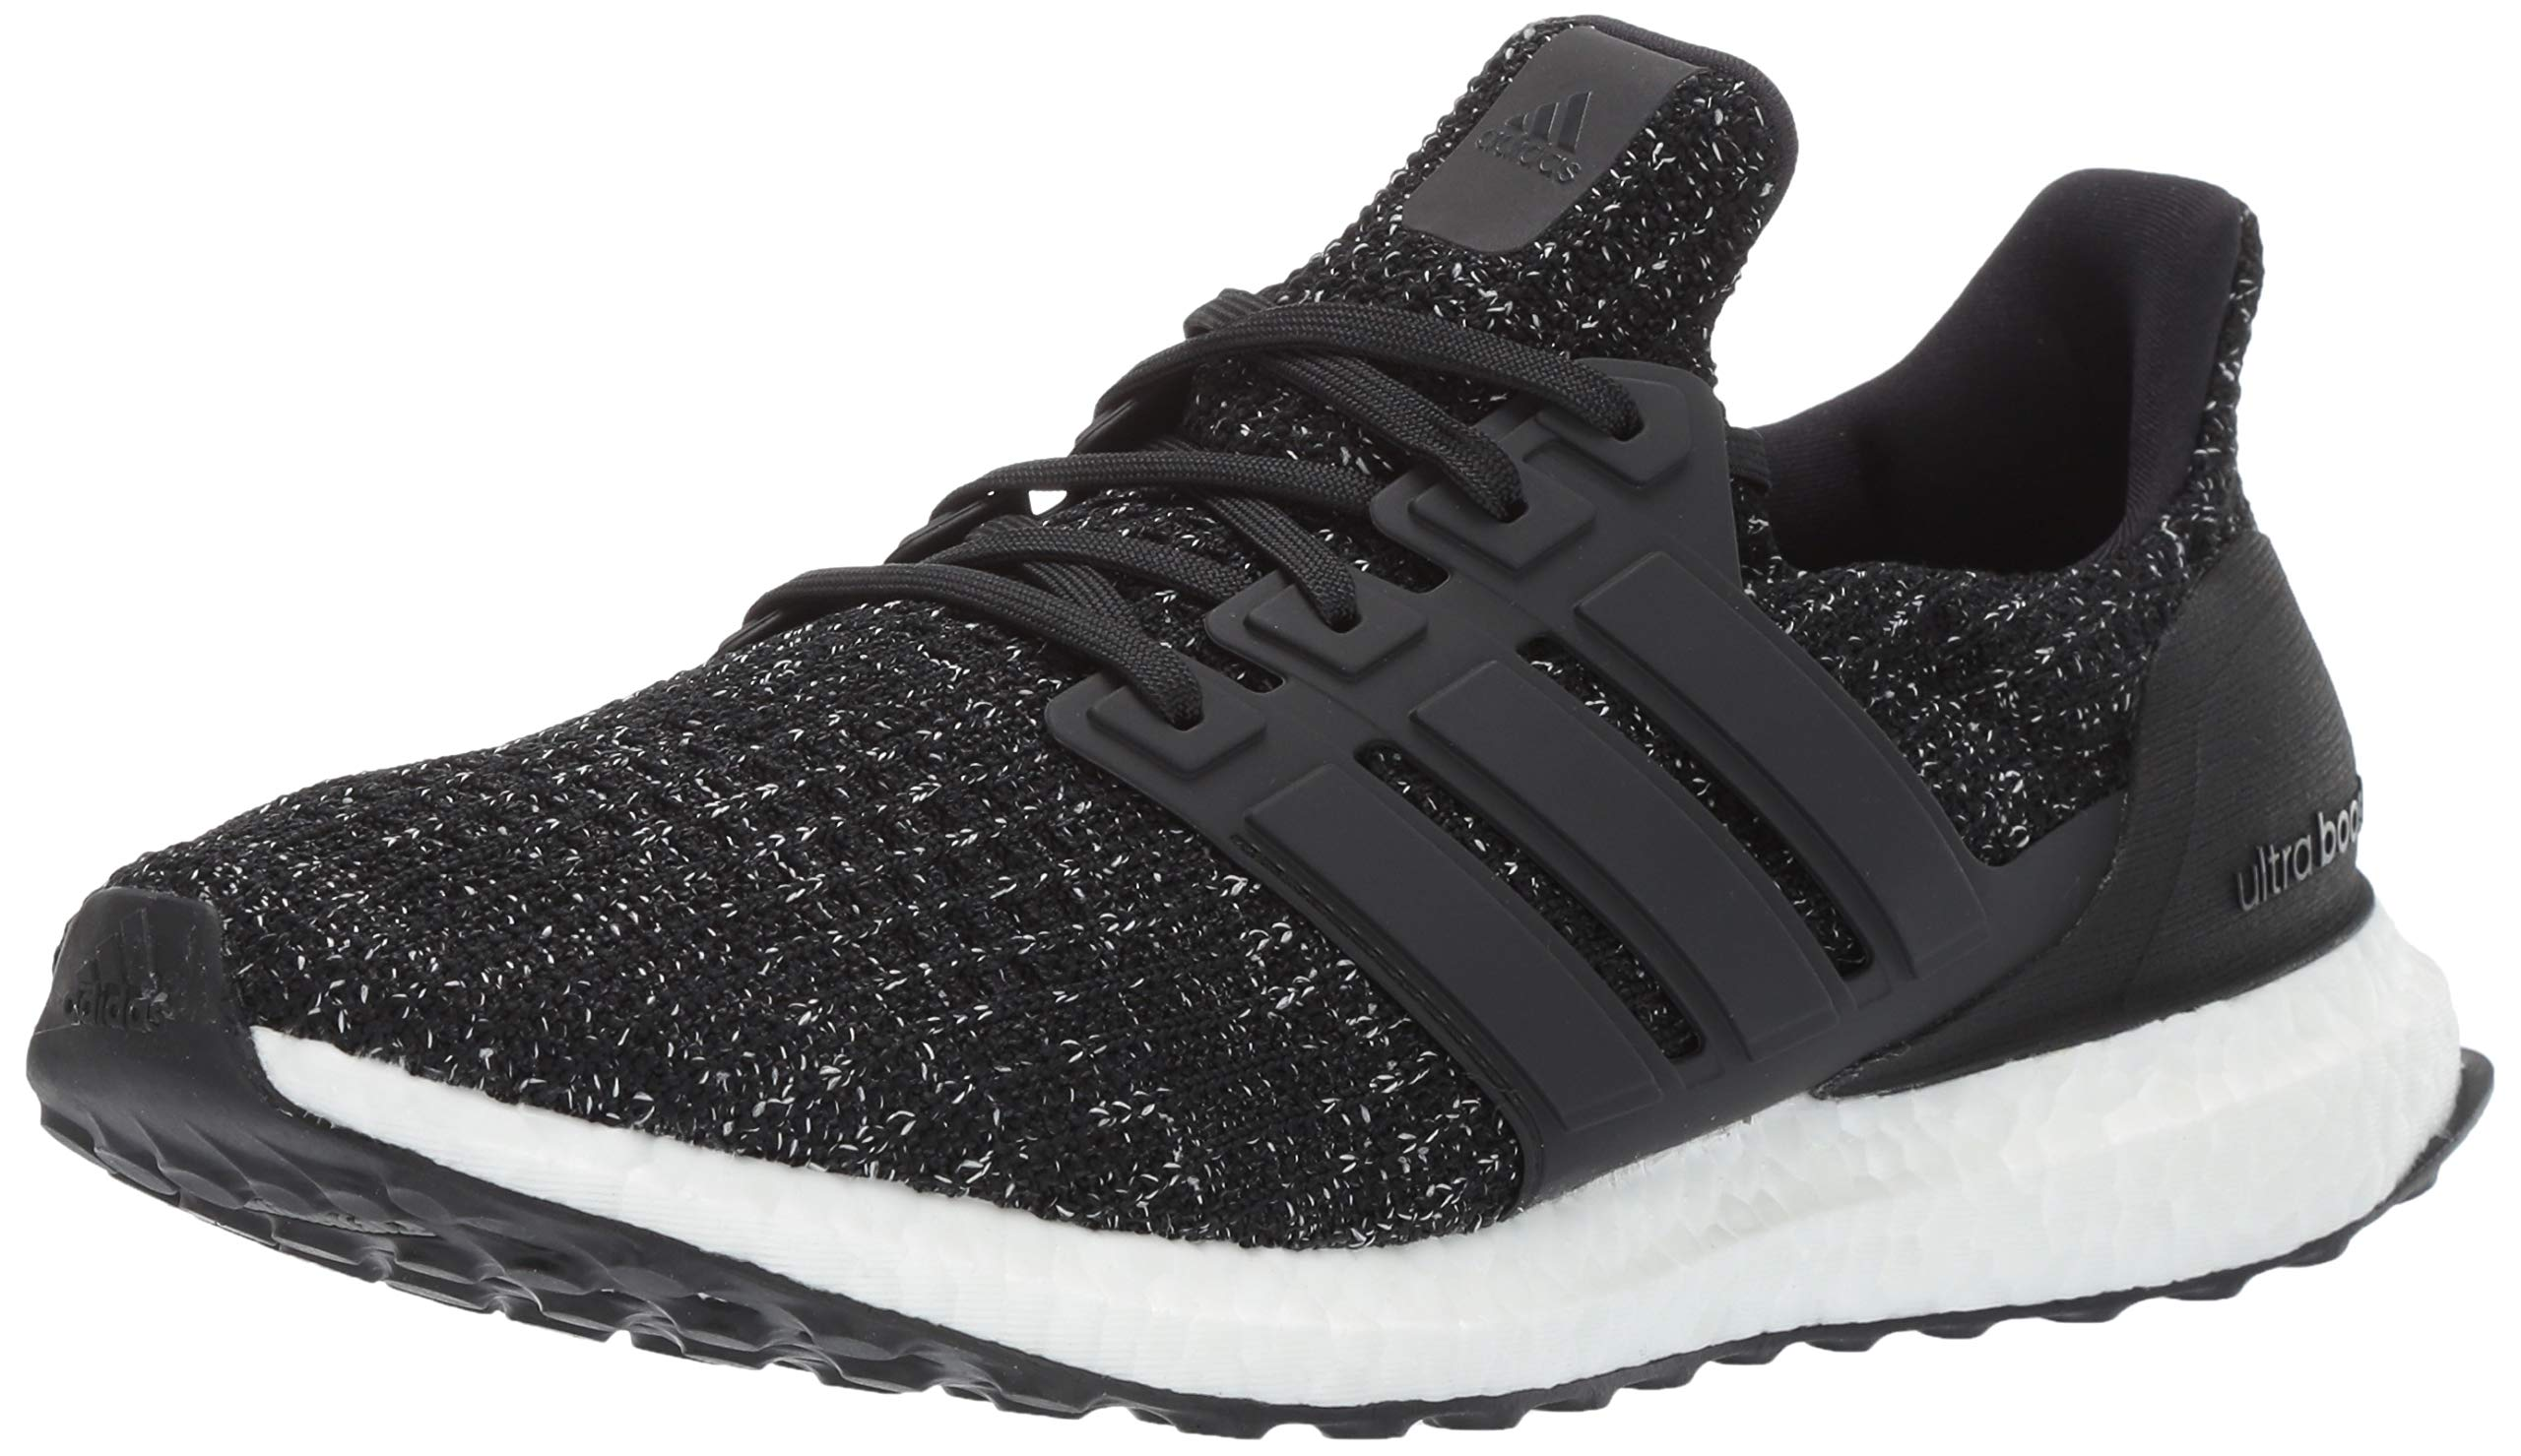 adidas Men's Ultraboost, Black/White, 6 M US